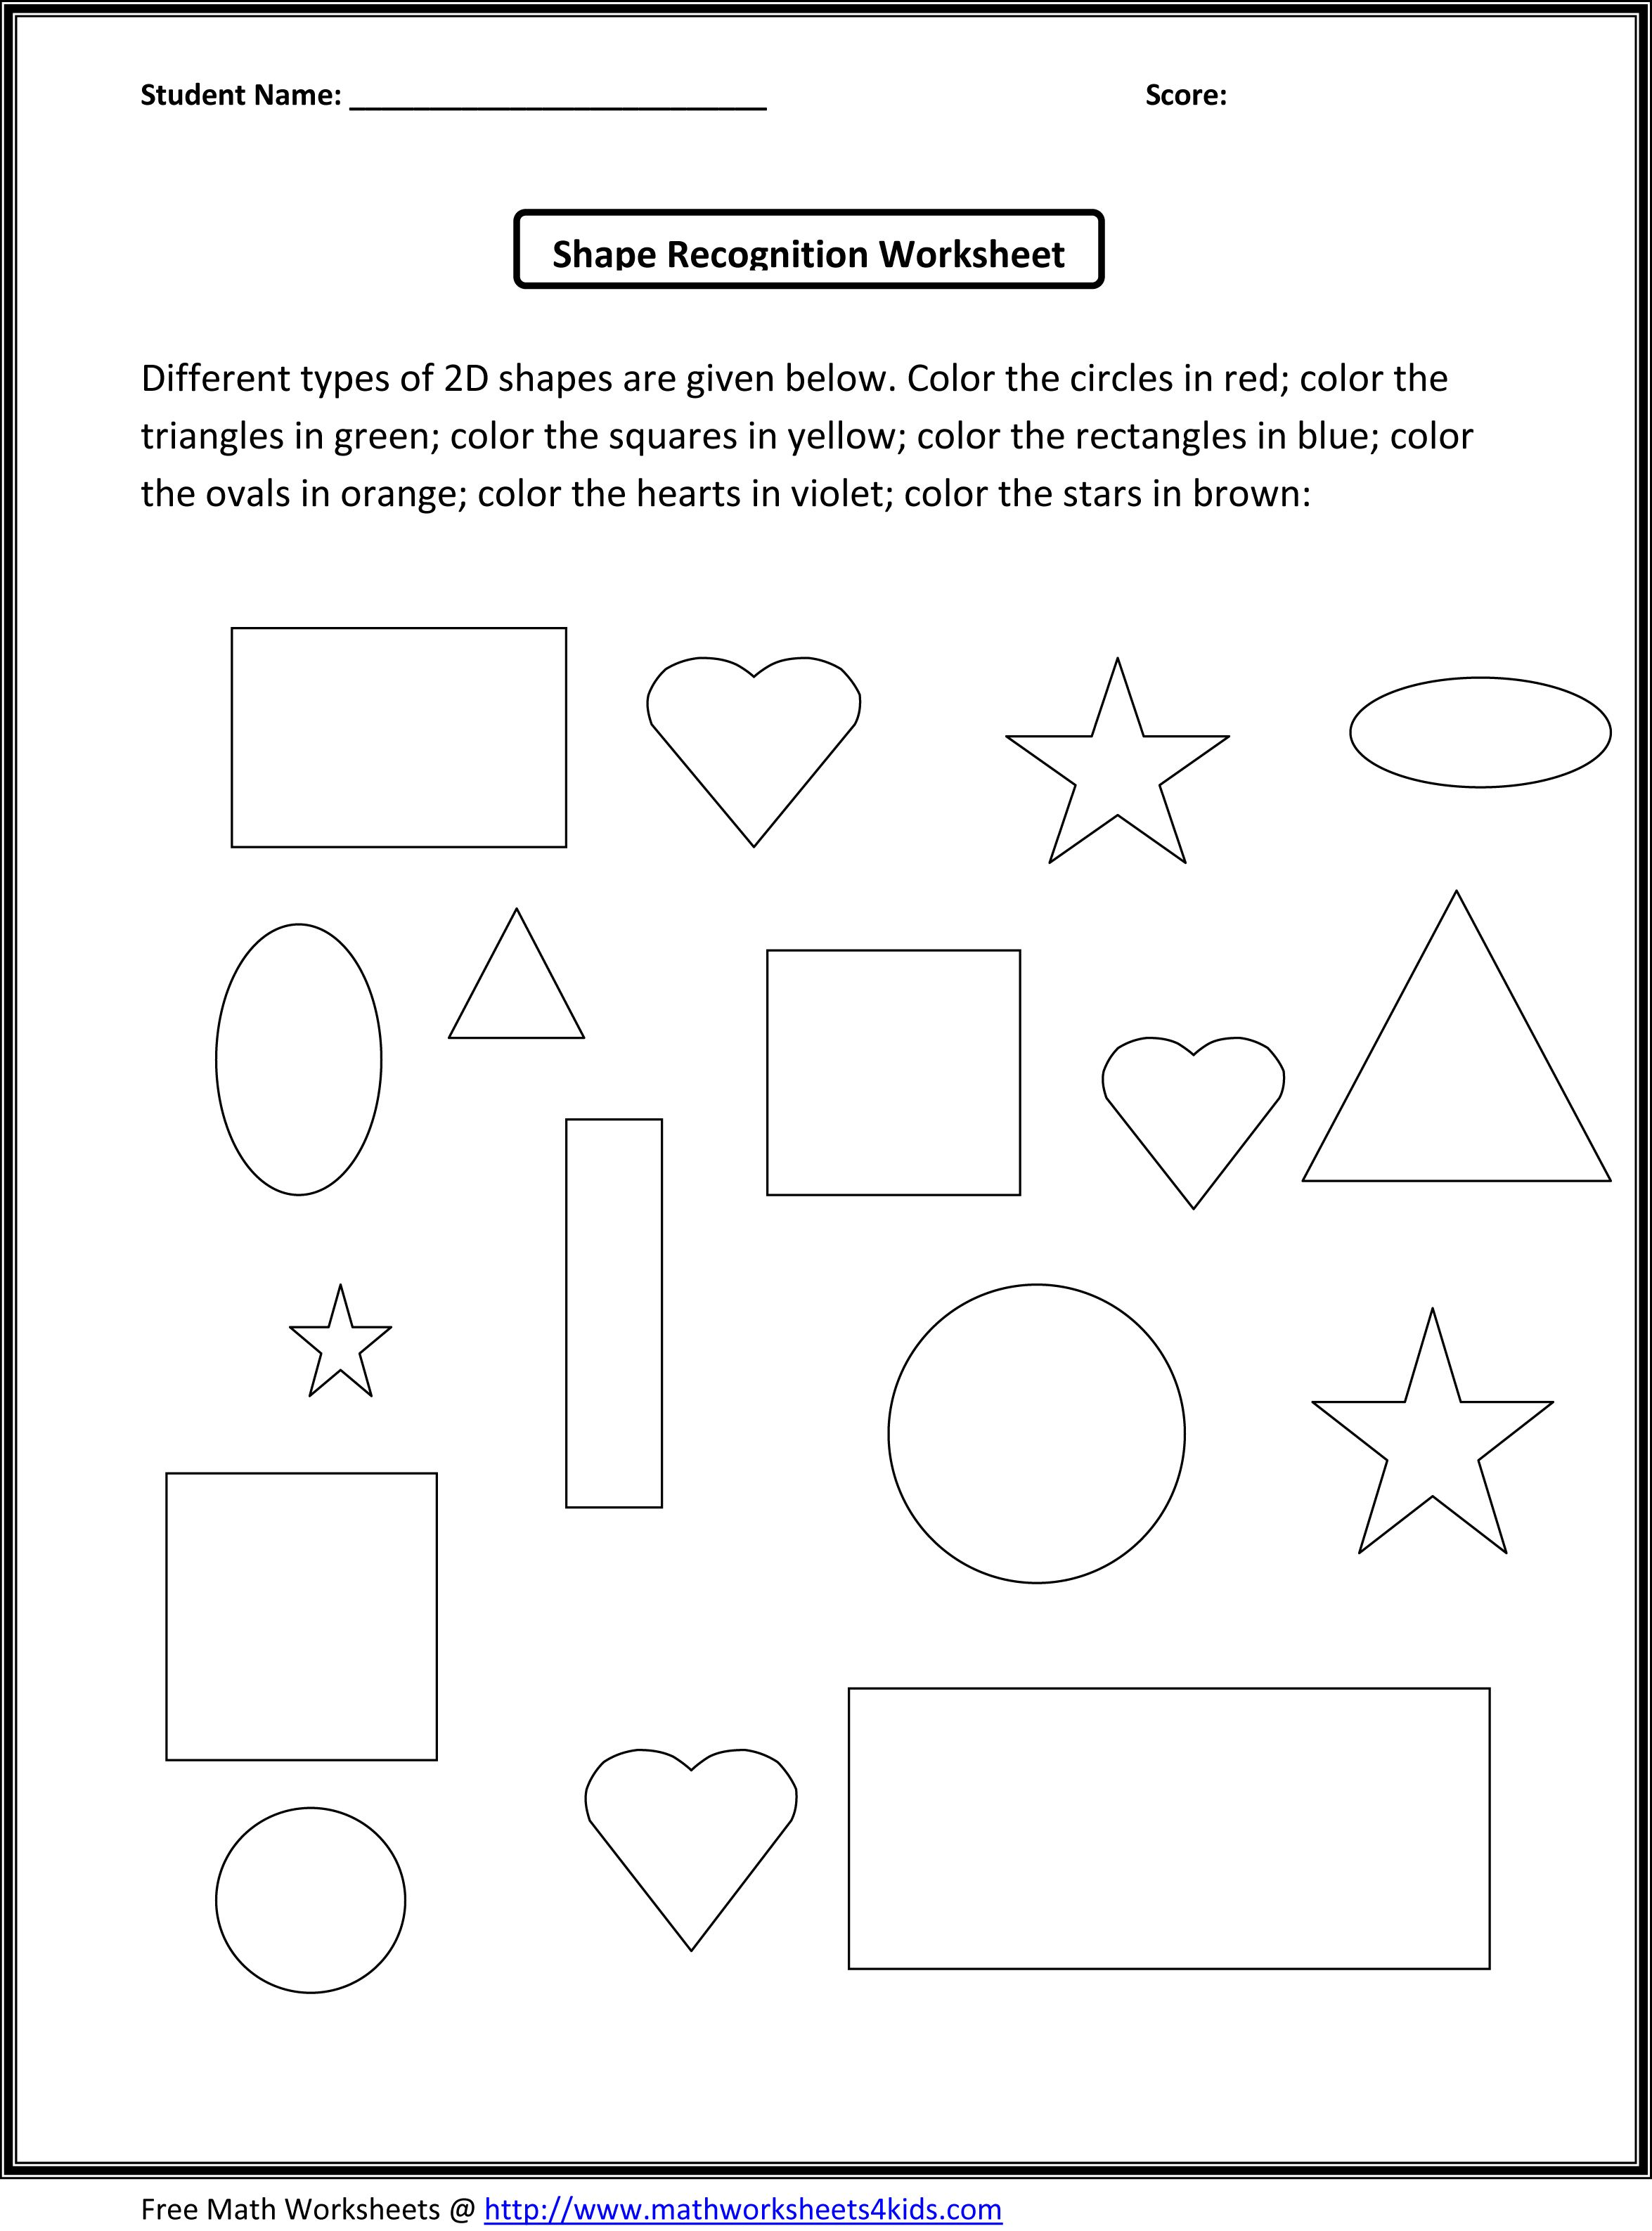 Printables Math Worksheets For Kinder worksheet for kindergarten math worksheets spanish bac 2 2th primary kindergarten